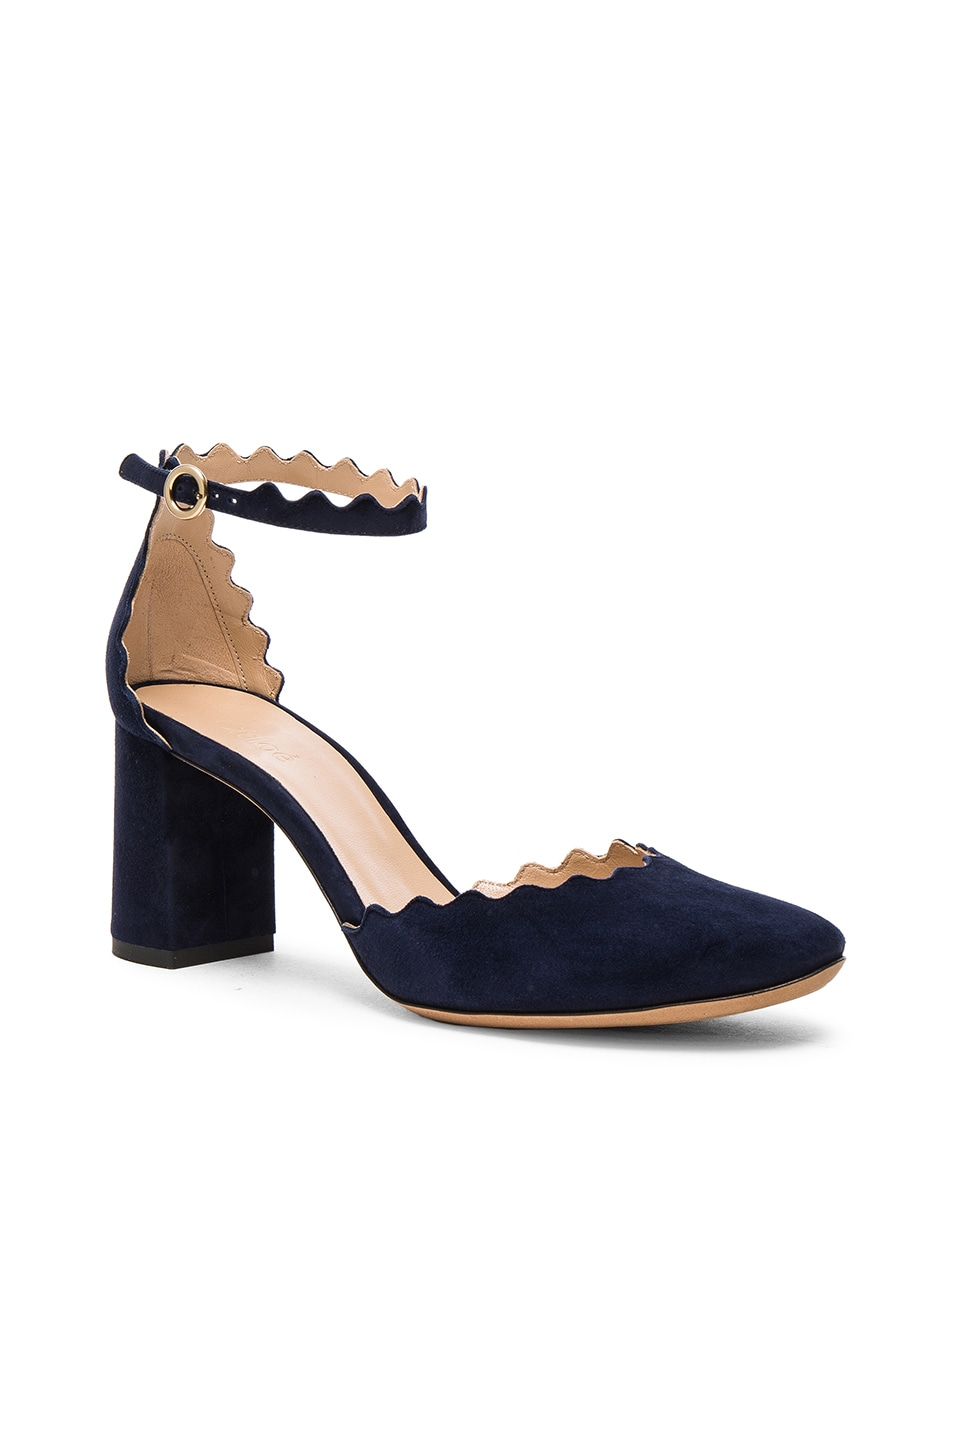 Image 2 of Chloe Suede Lauren Ballerina Pumps in Blue Lagoon